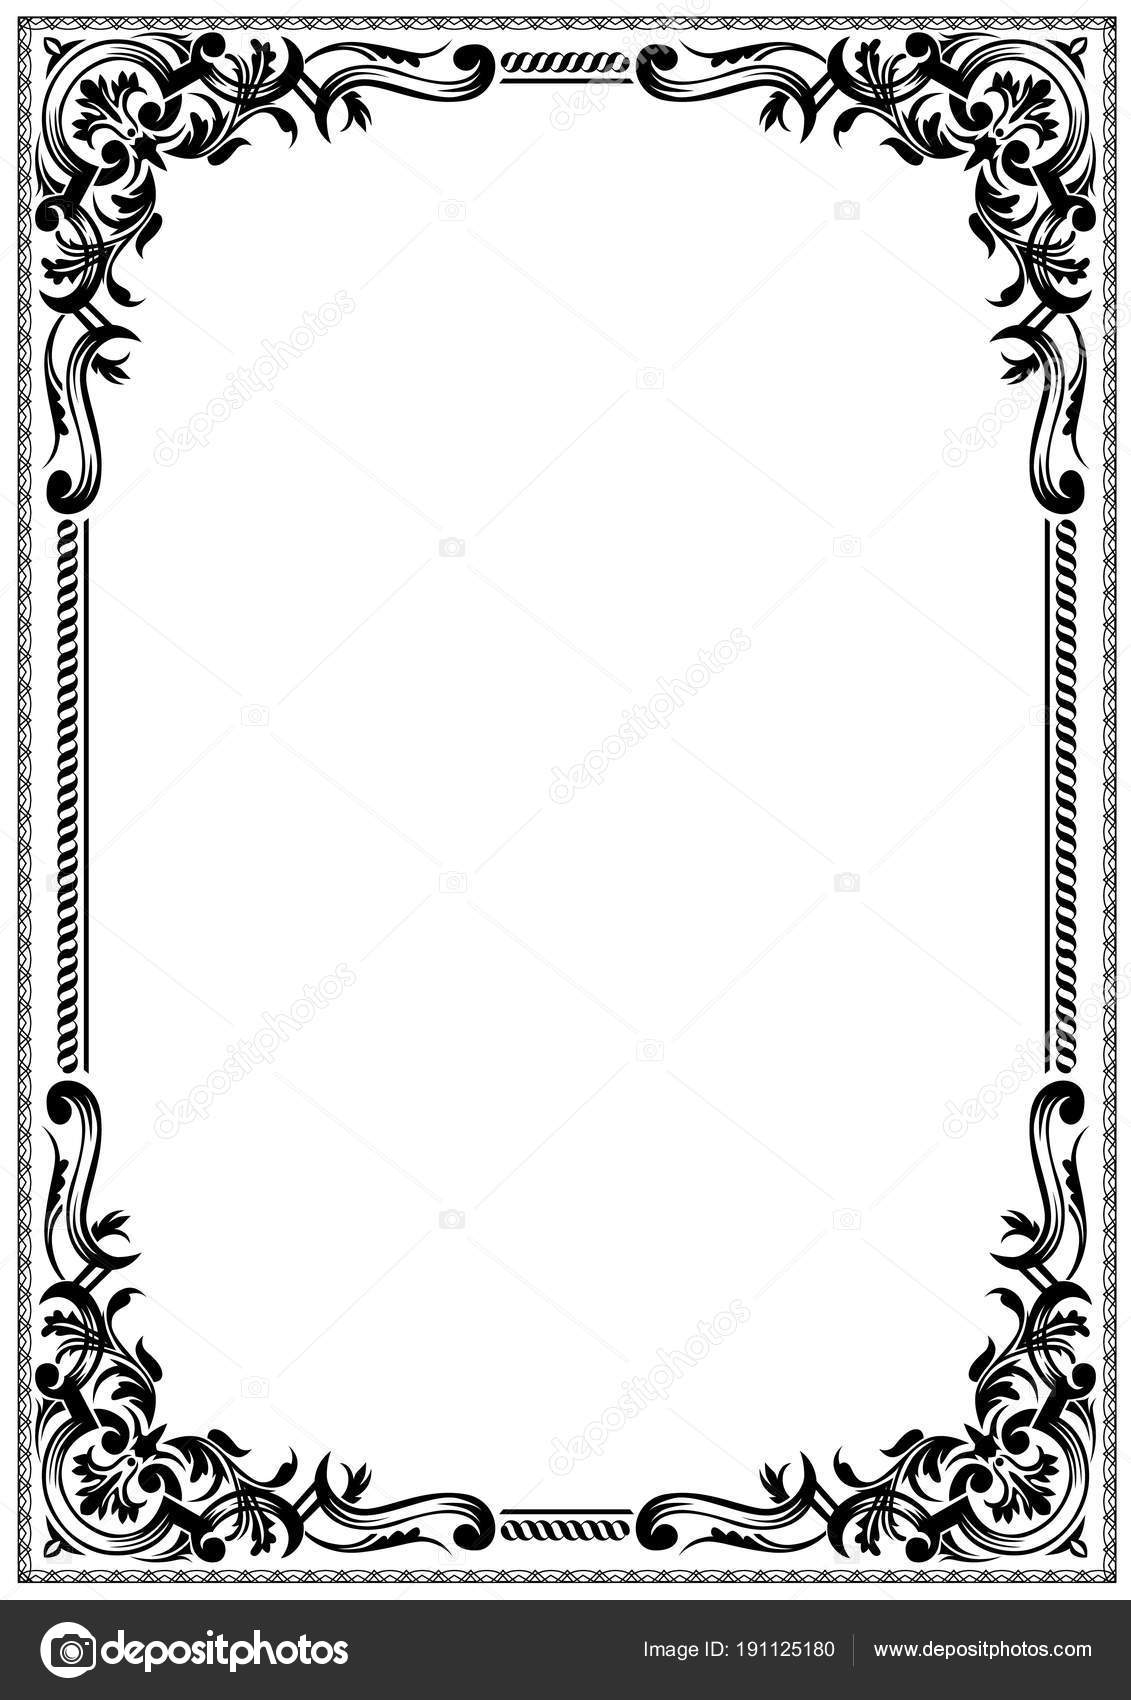 Delicate Black White Frame Border Design Greeting Cards Other Award